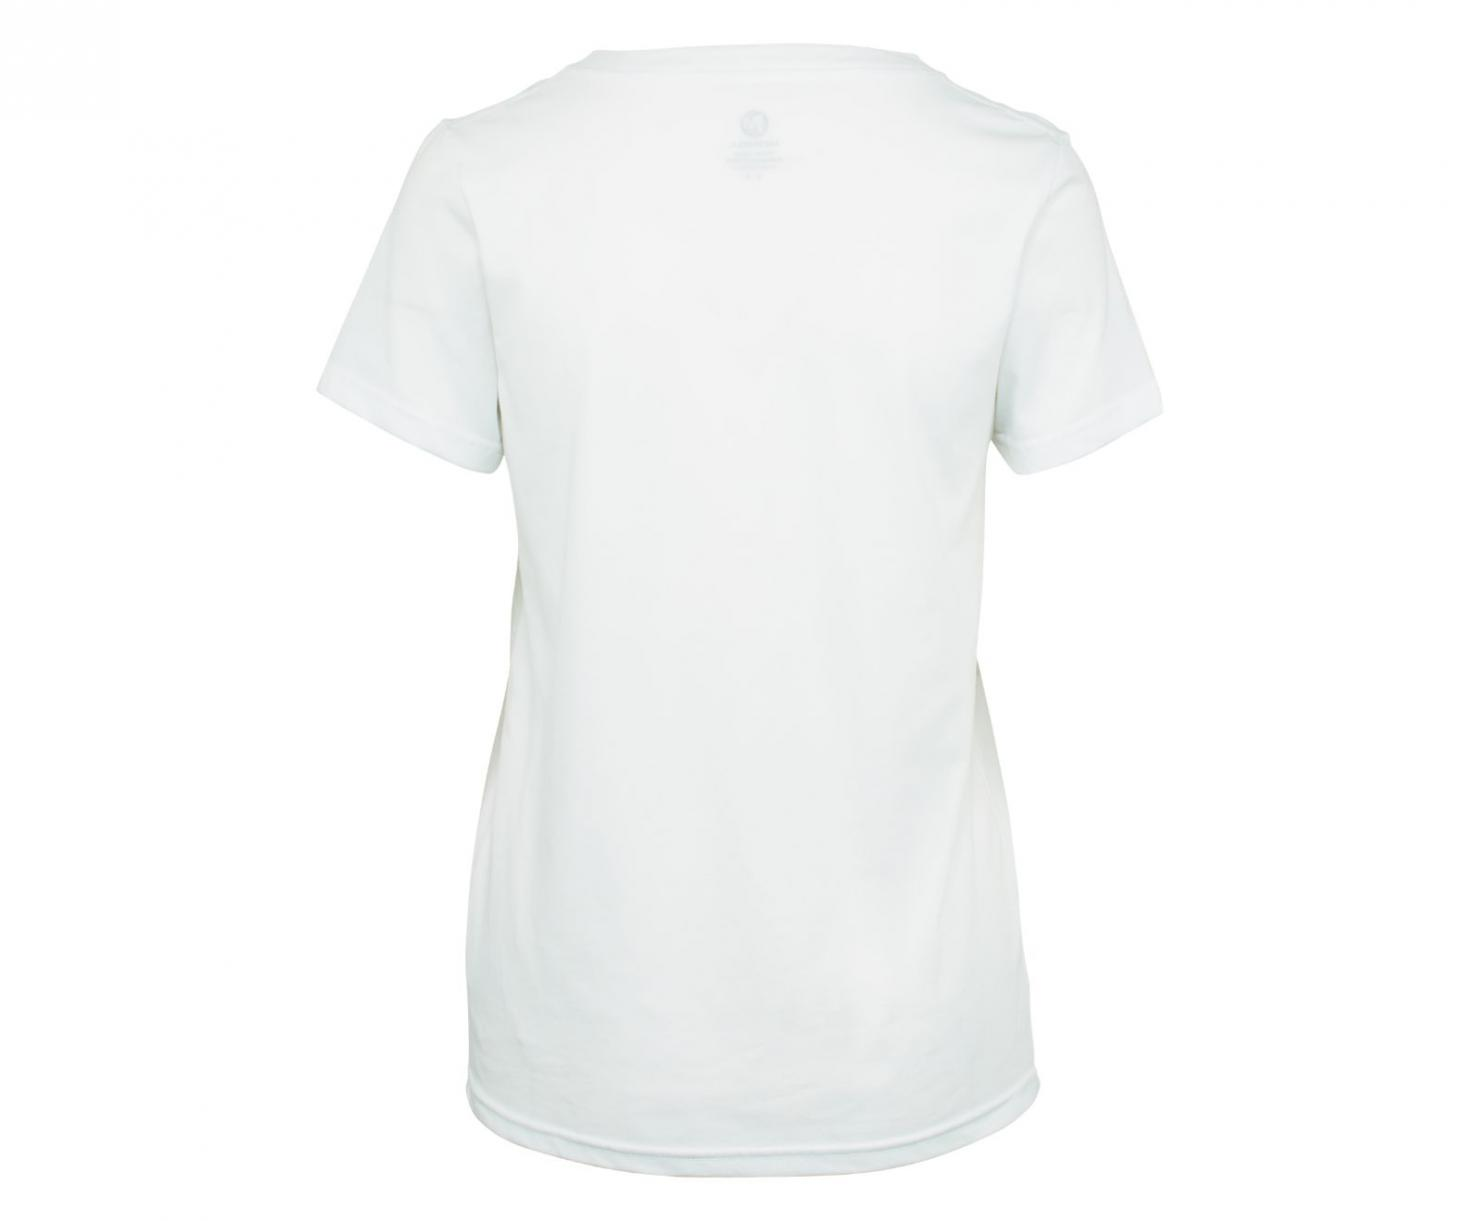 Merrell Damen Oberteile | Summits and Sunsets Tee White